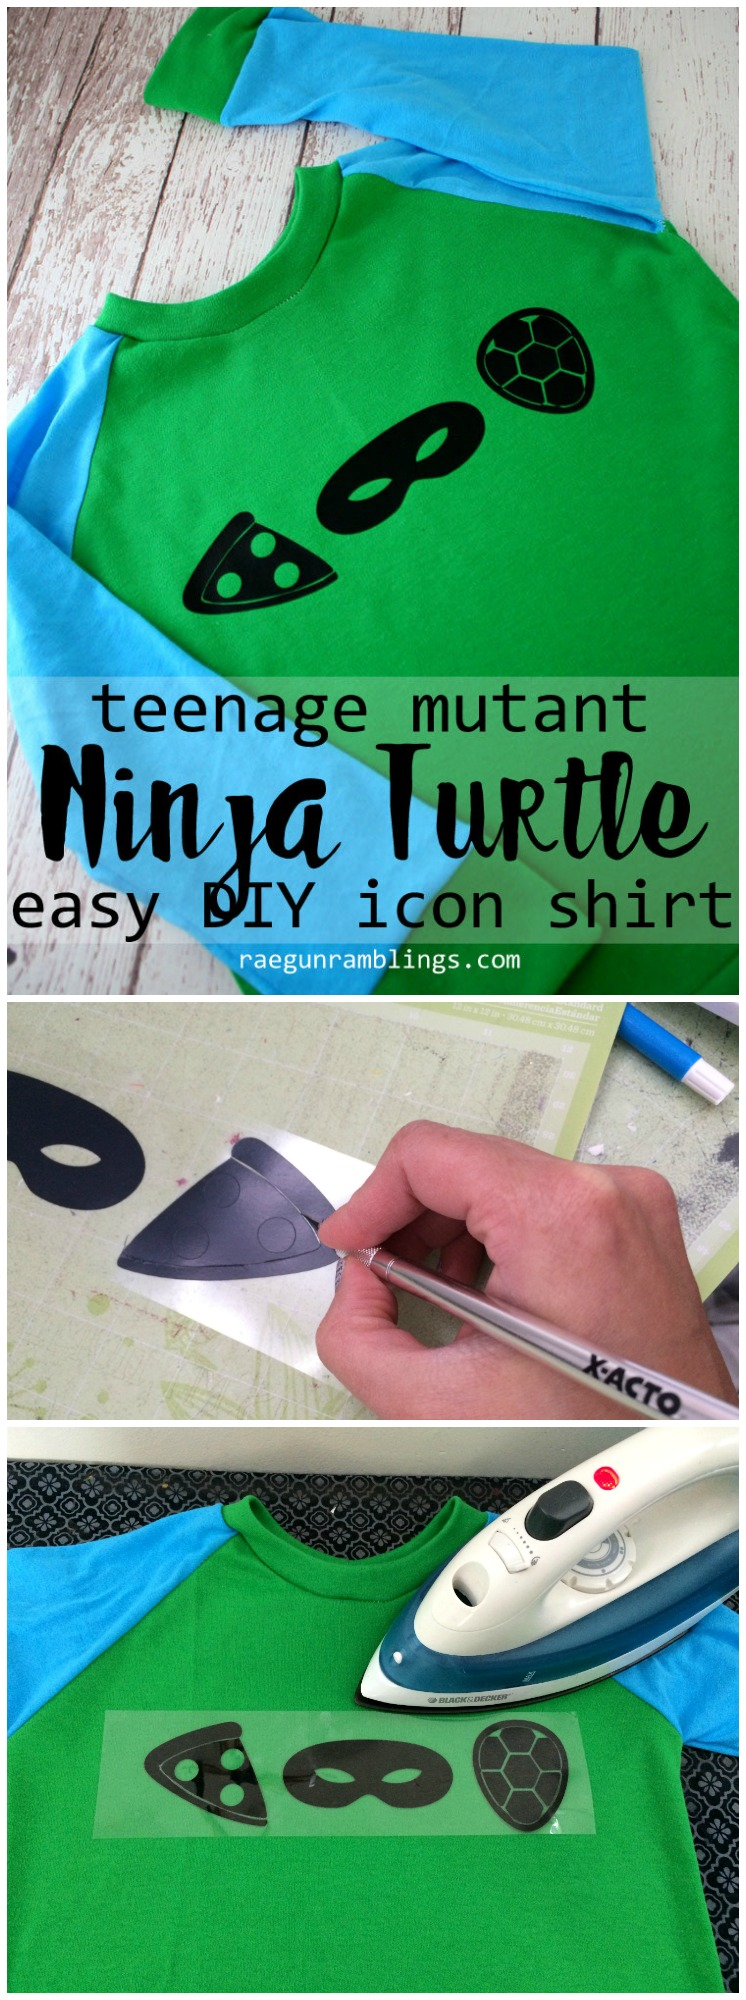 I to make a quick and easy DIY icon teenage mutant ninja turtle shirt. Love this TMNT top tutorial